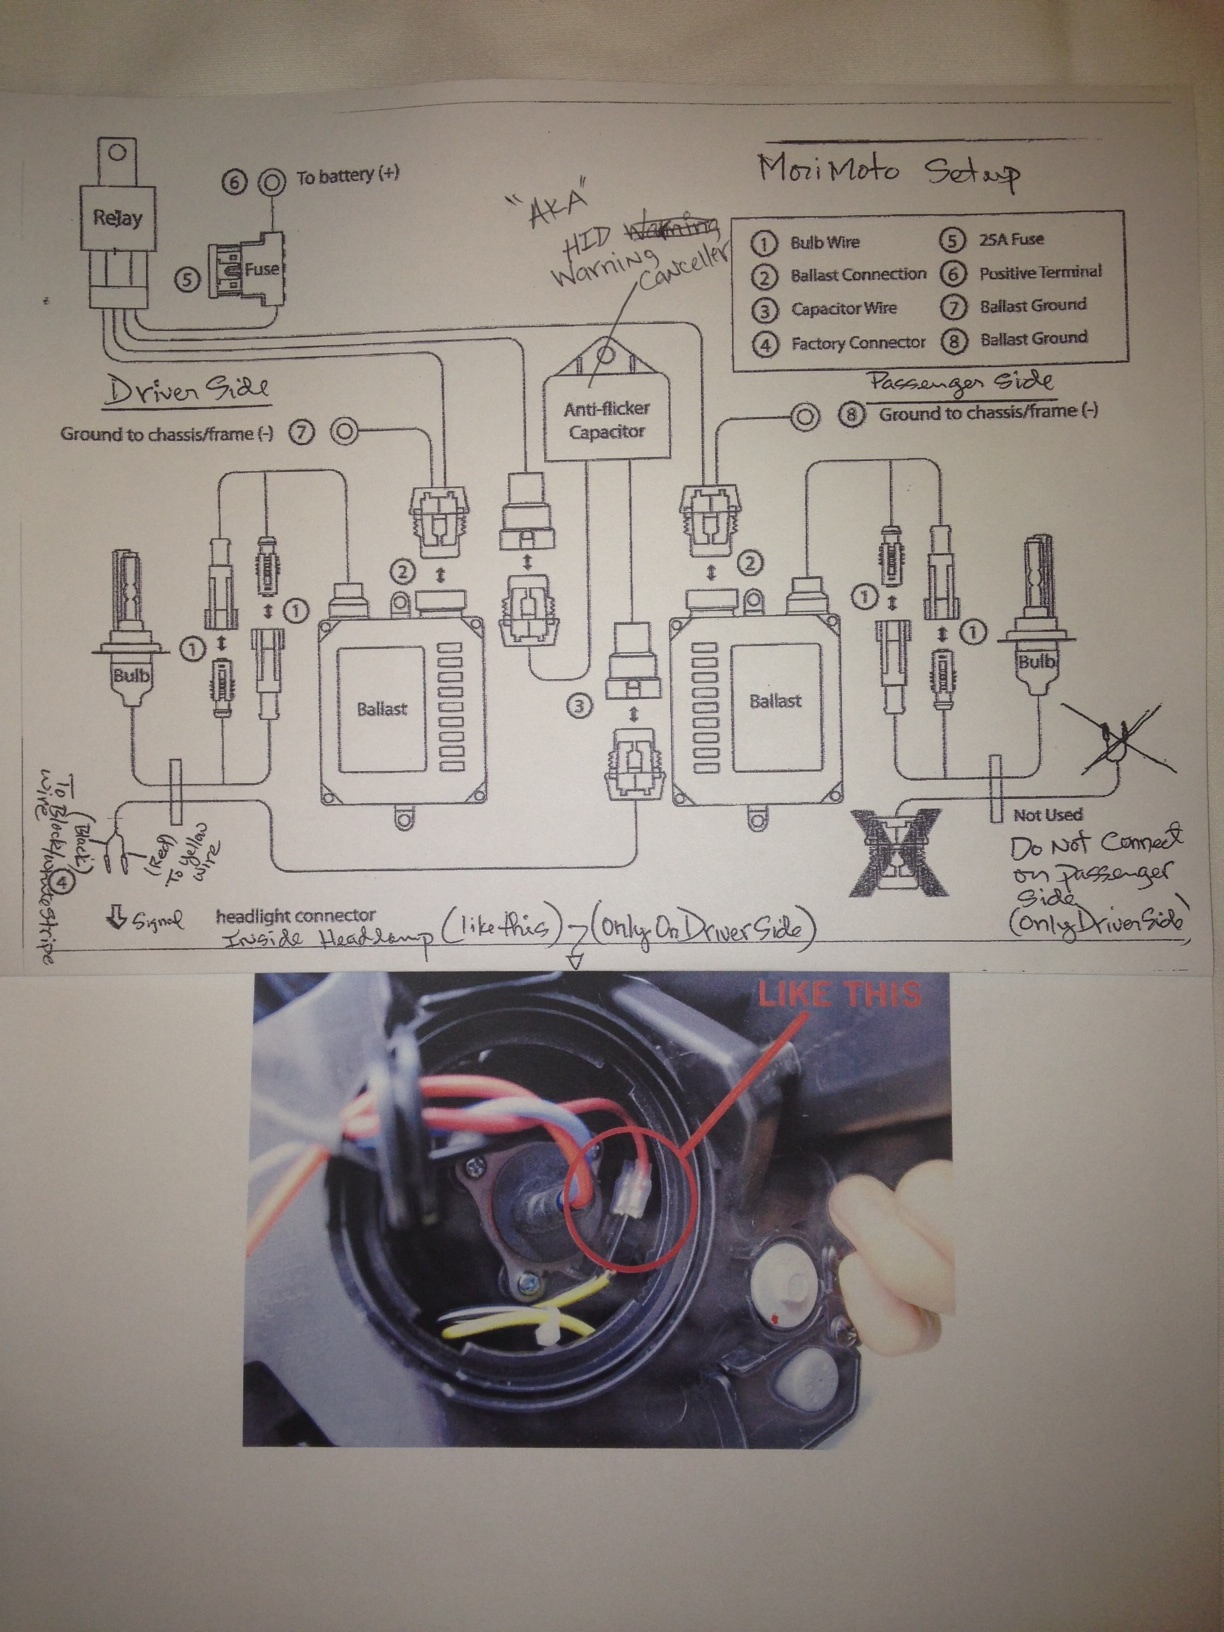 haldex trs wiring diagram aprilaire 700 nest hid hd harness wirings